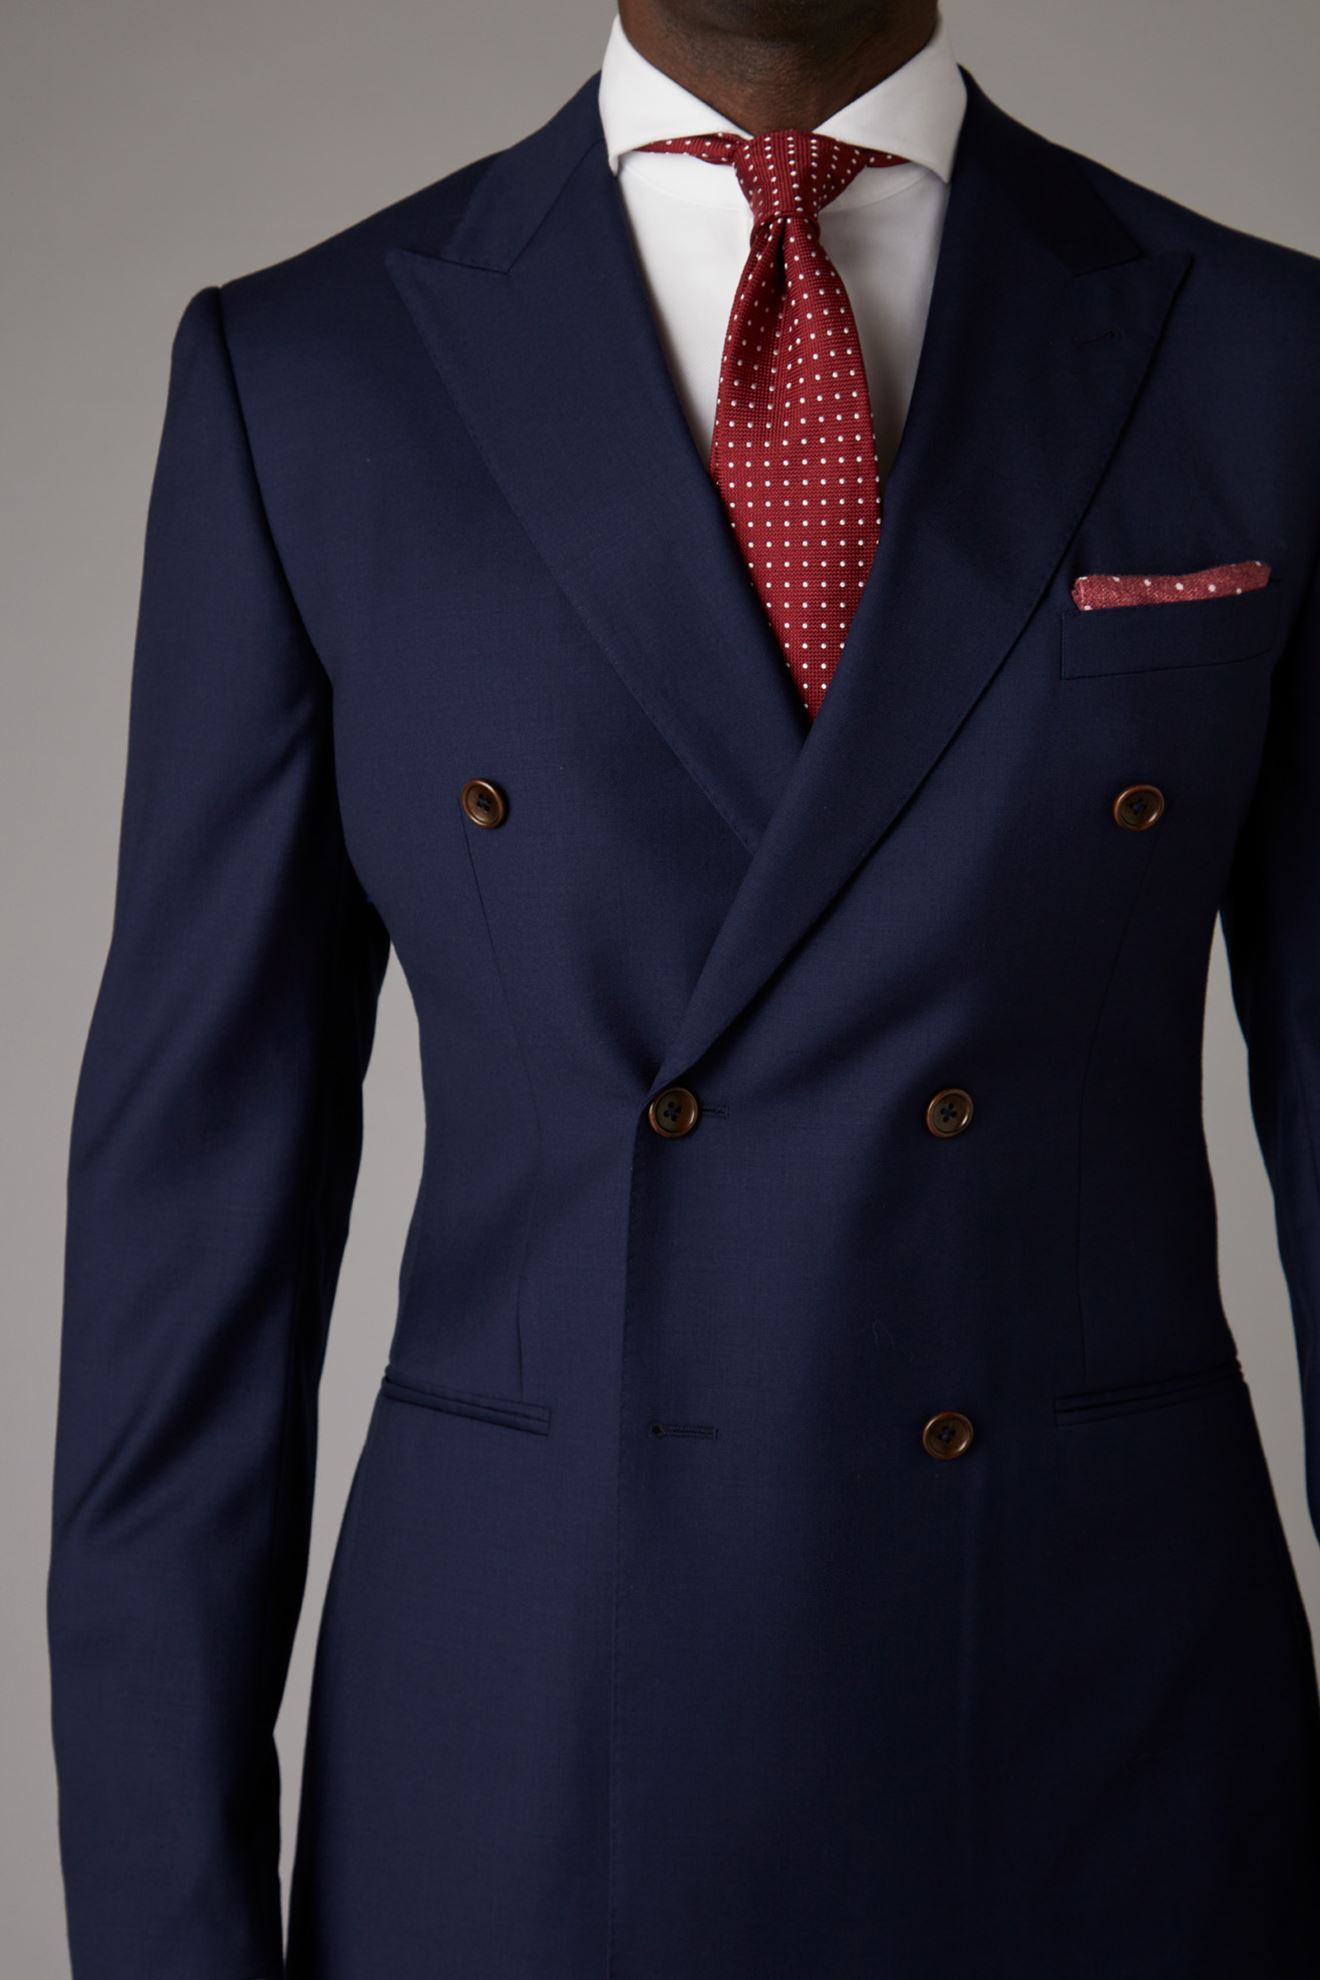 Picture of Double-Breasted Dark Navy Blue Two-Piece Suit